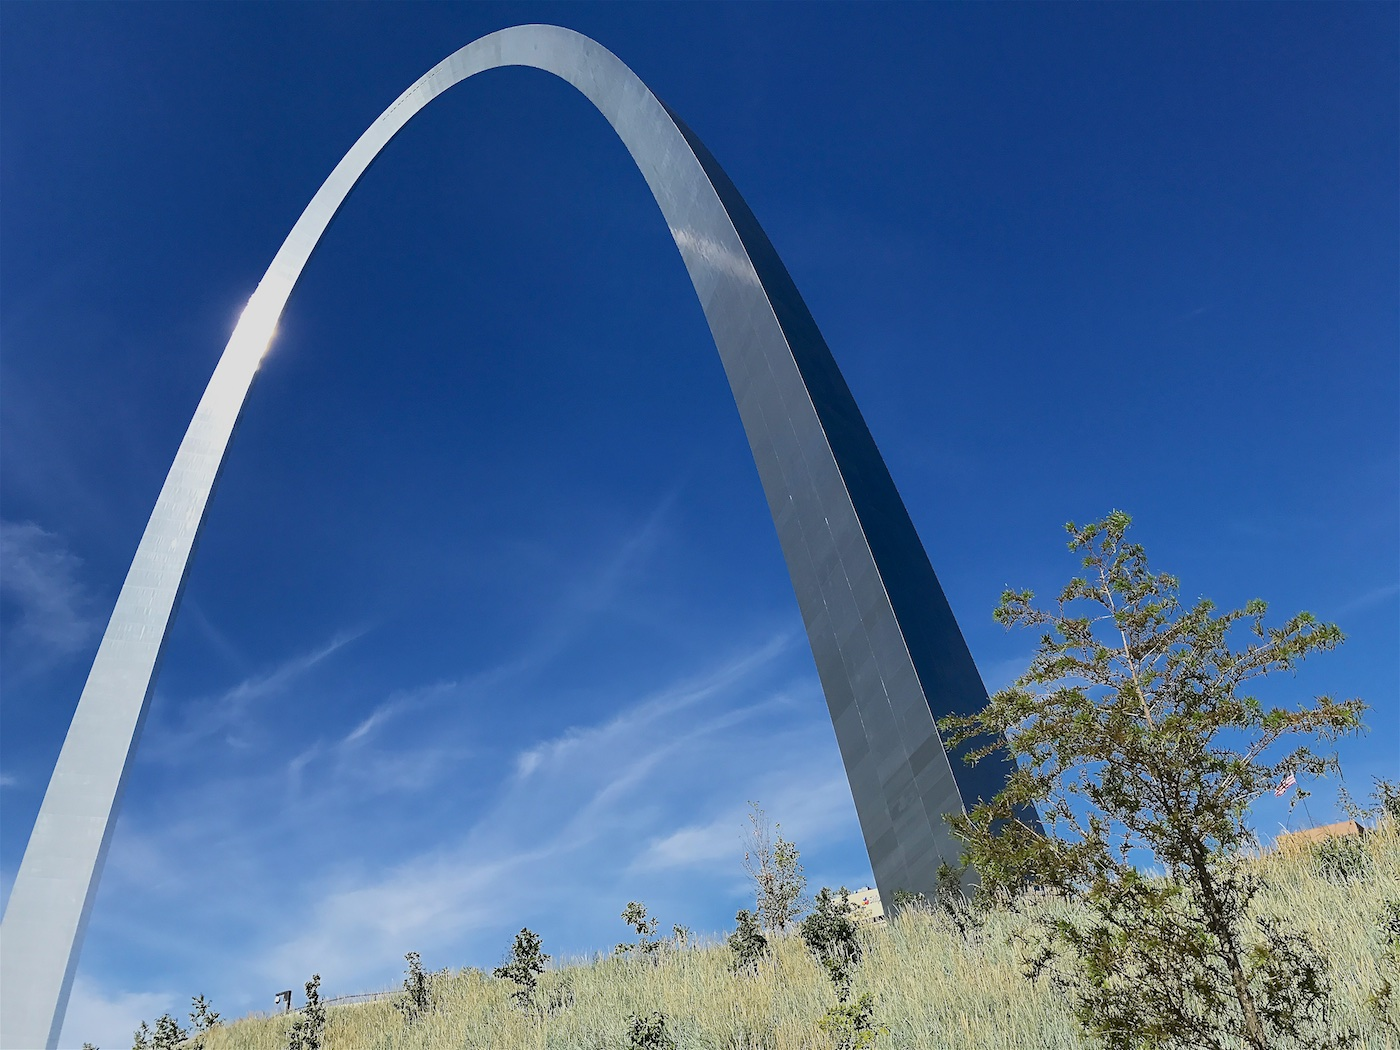 Color photograph of the Gateway Arch in Saint Louis, MO, from the northeast side against a dark blue sky with approaching cirrus clouds on the horizon. Above the grassy slope with scattered young trees in the foreground, a U.S. flag can be spotted in the distance at the right edge of the picture. A glistening sunspot on the shiny stainless steel south leg of the arch creates a bright secondary streak reflection on the east side of the north leg.